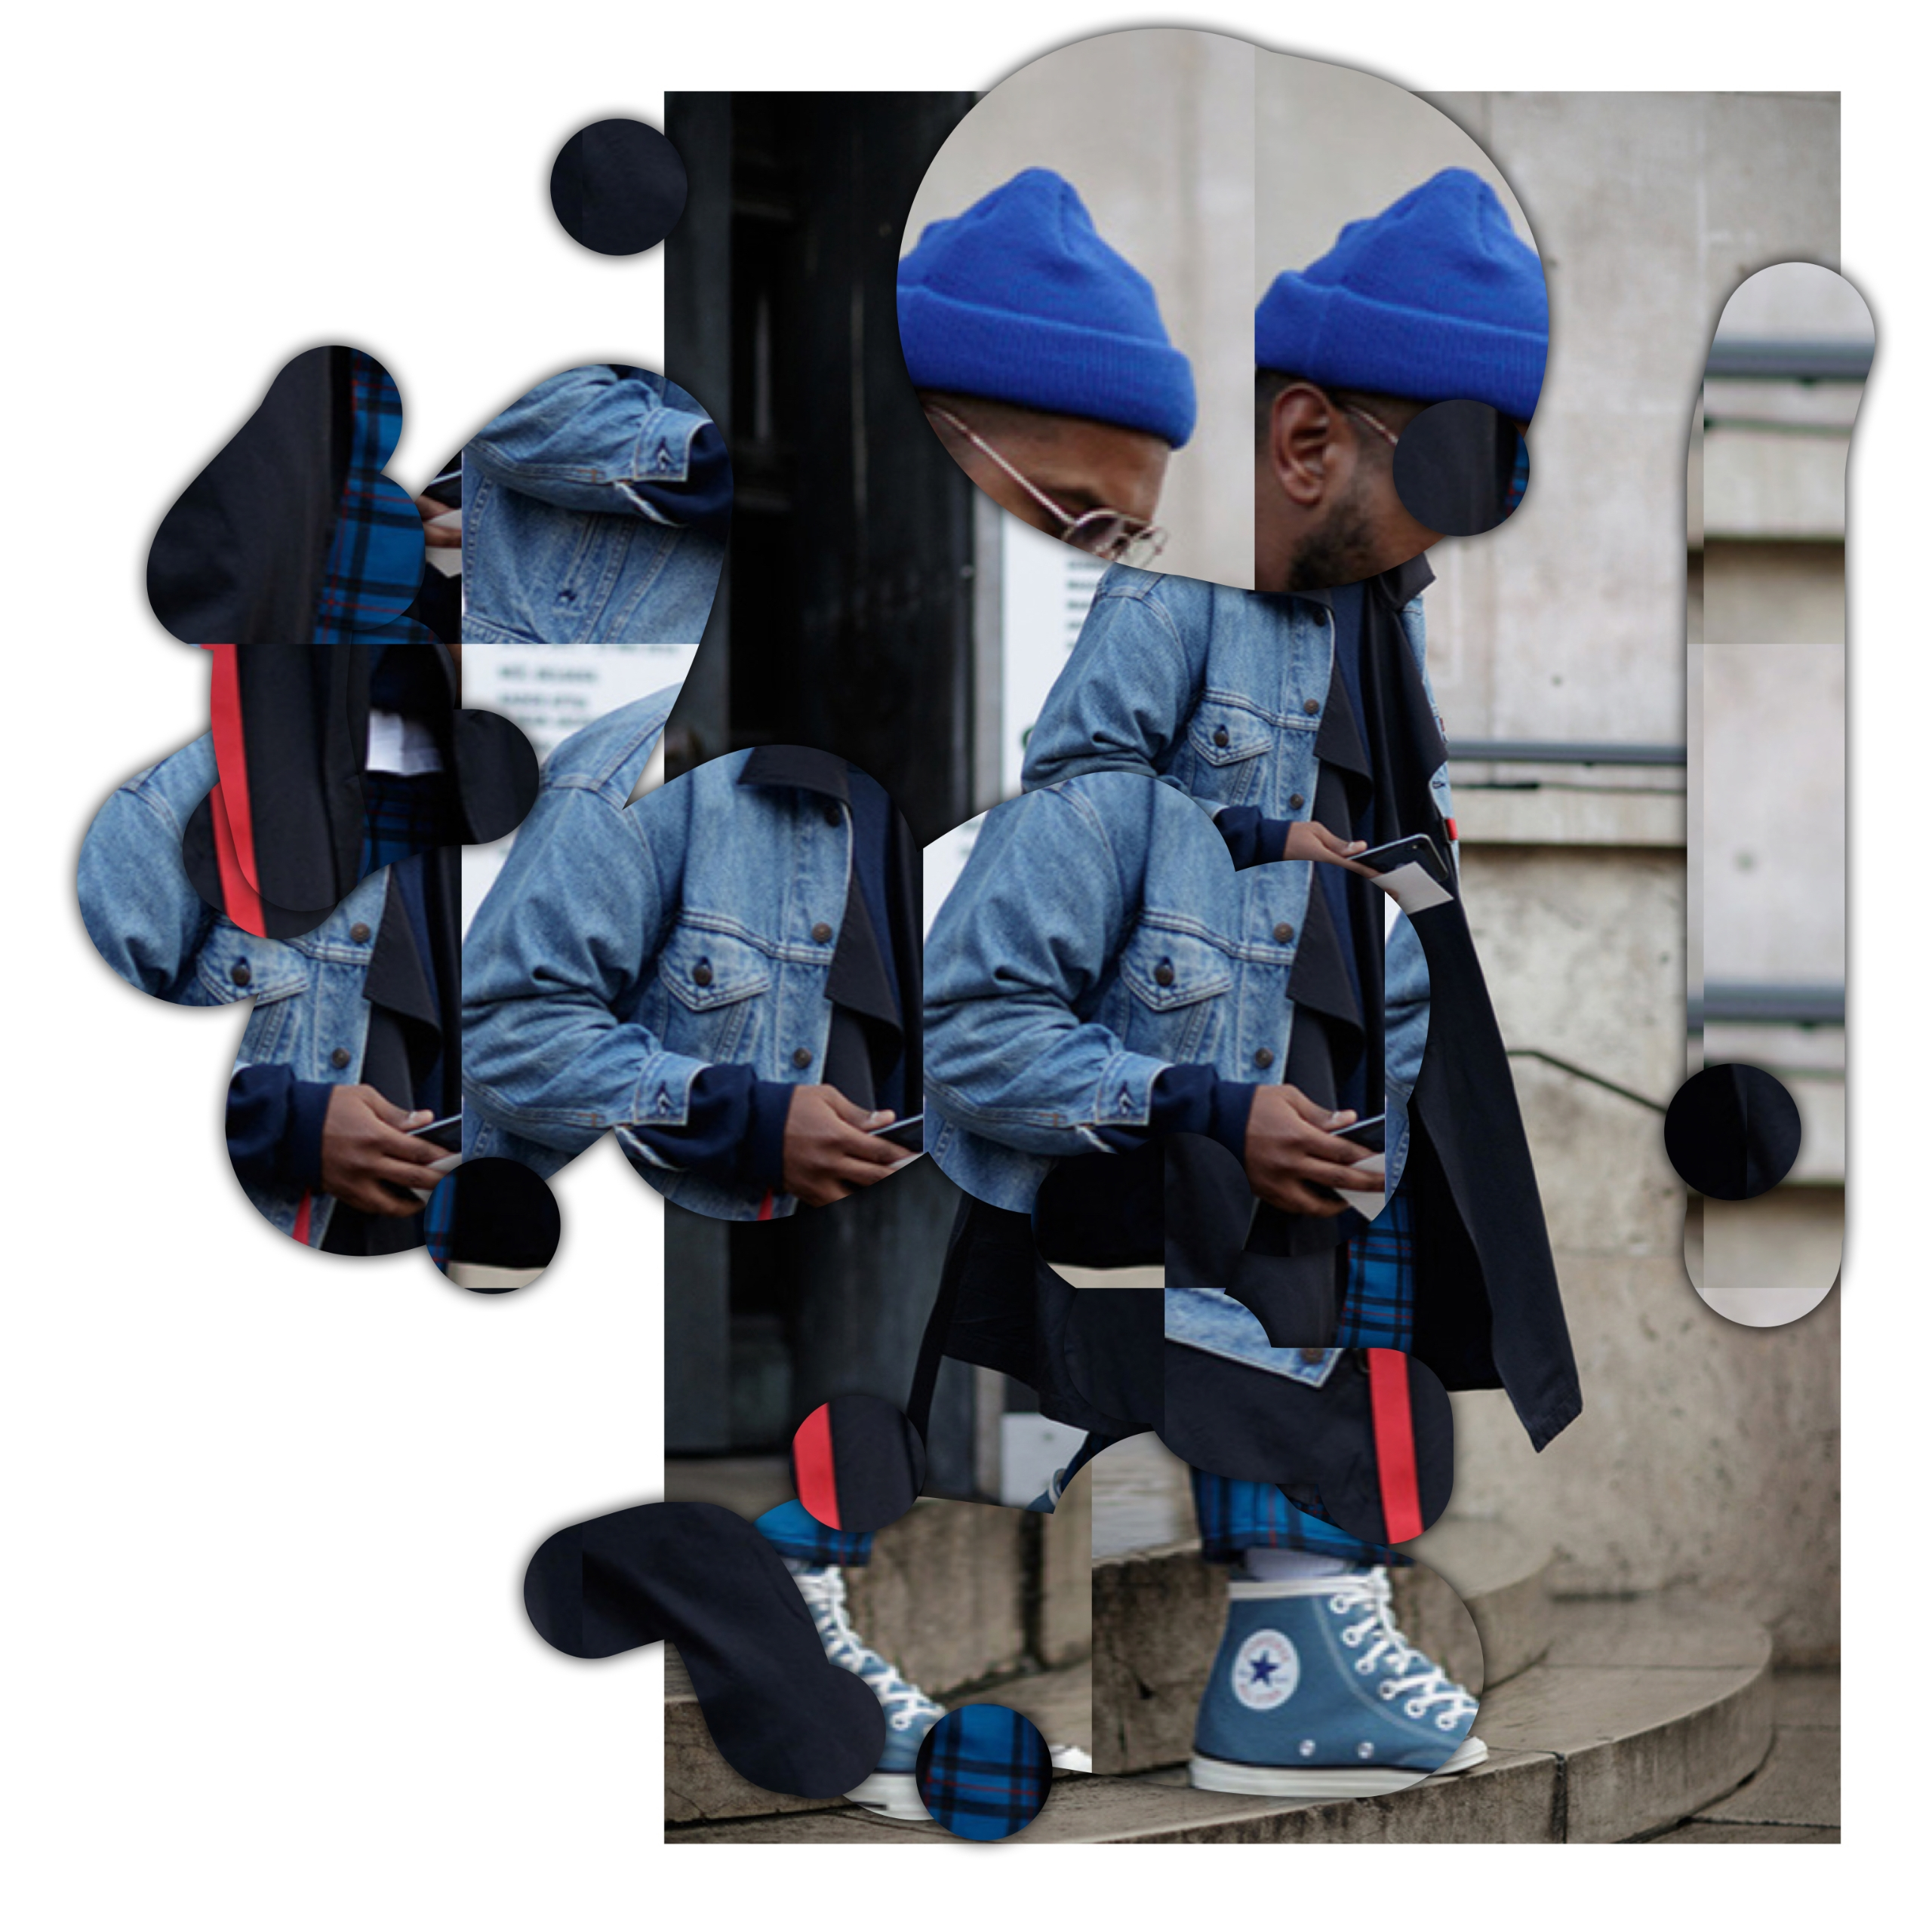 Paris Fashion week Julien Marti - julienmartin | ello